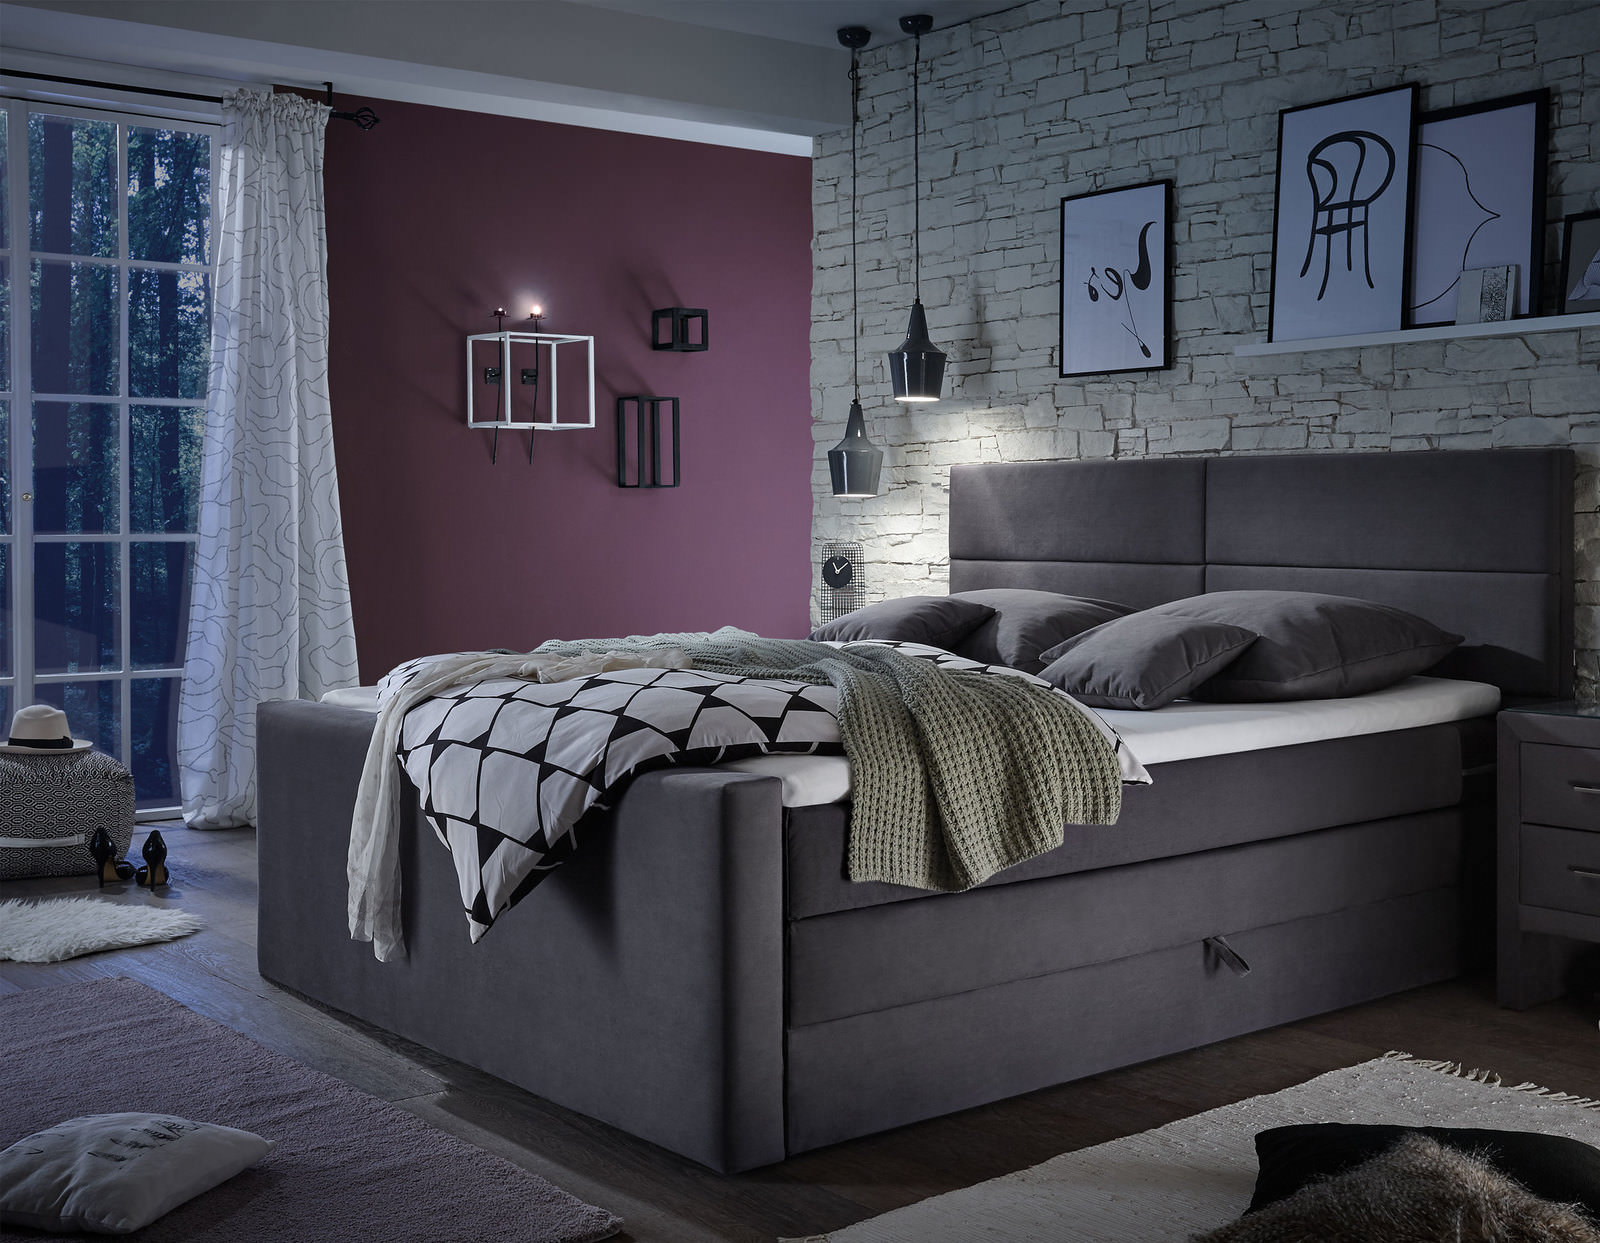 schaffrath kchen langenfeld schaffrath dsseldorf with schaffrath kchen langenfeld mondo. Black Bedroom Furniture Sets. Home Design Ideas